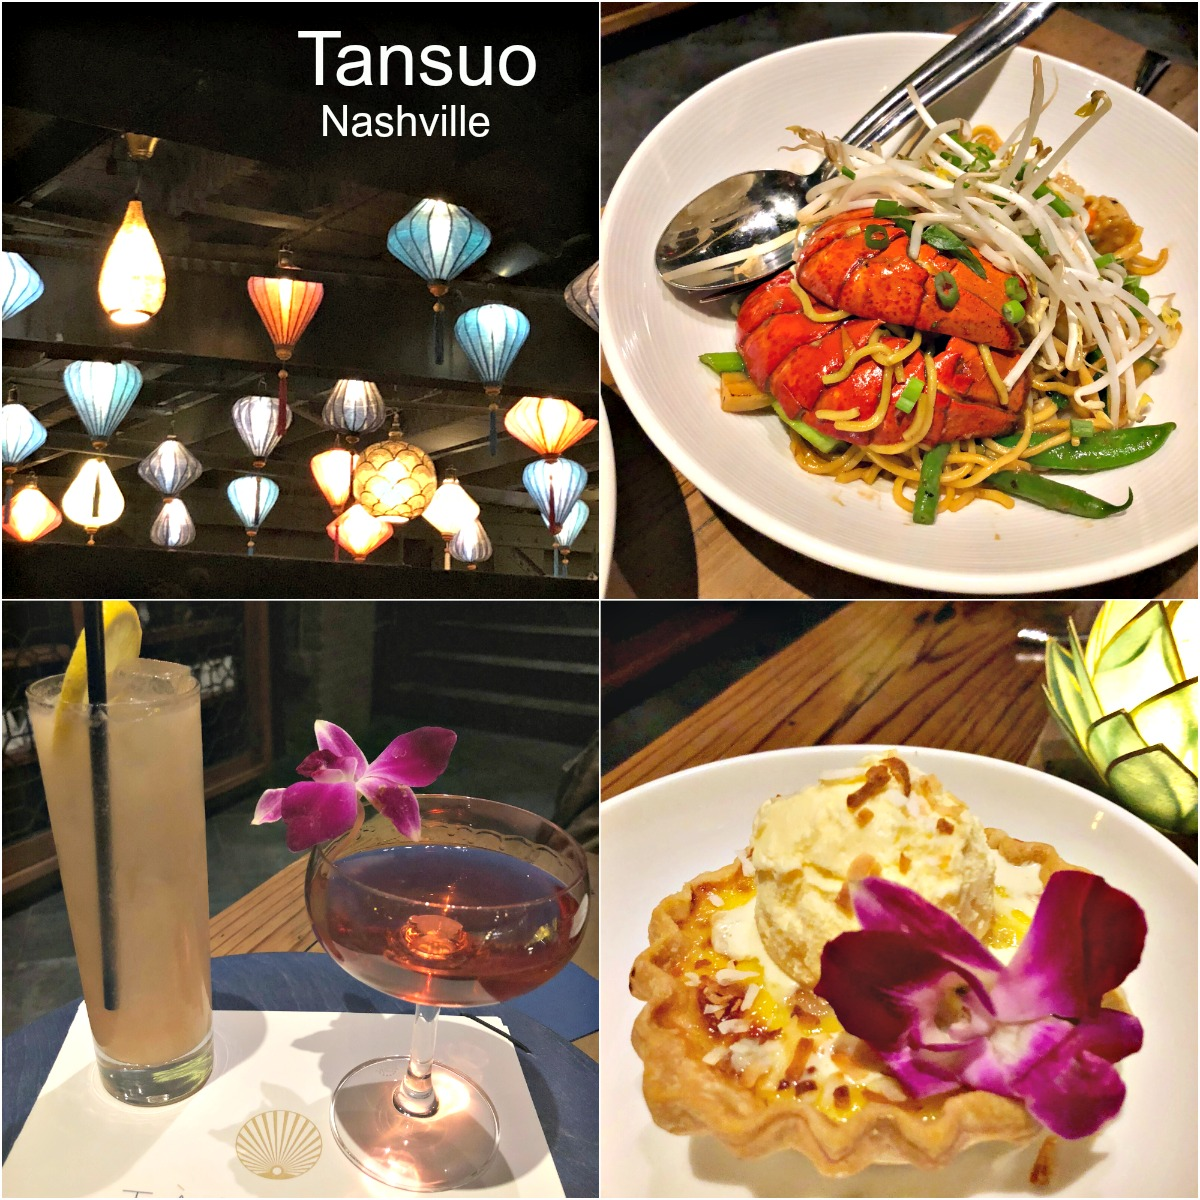 Nashville Restaurants: Tansuo from Spinach Tiger